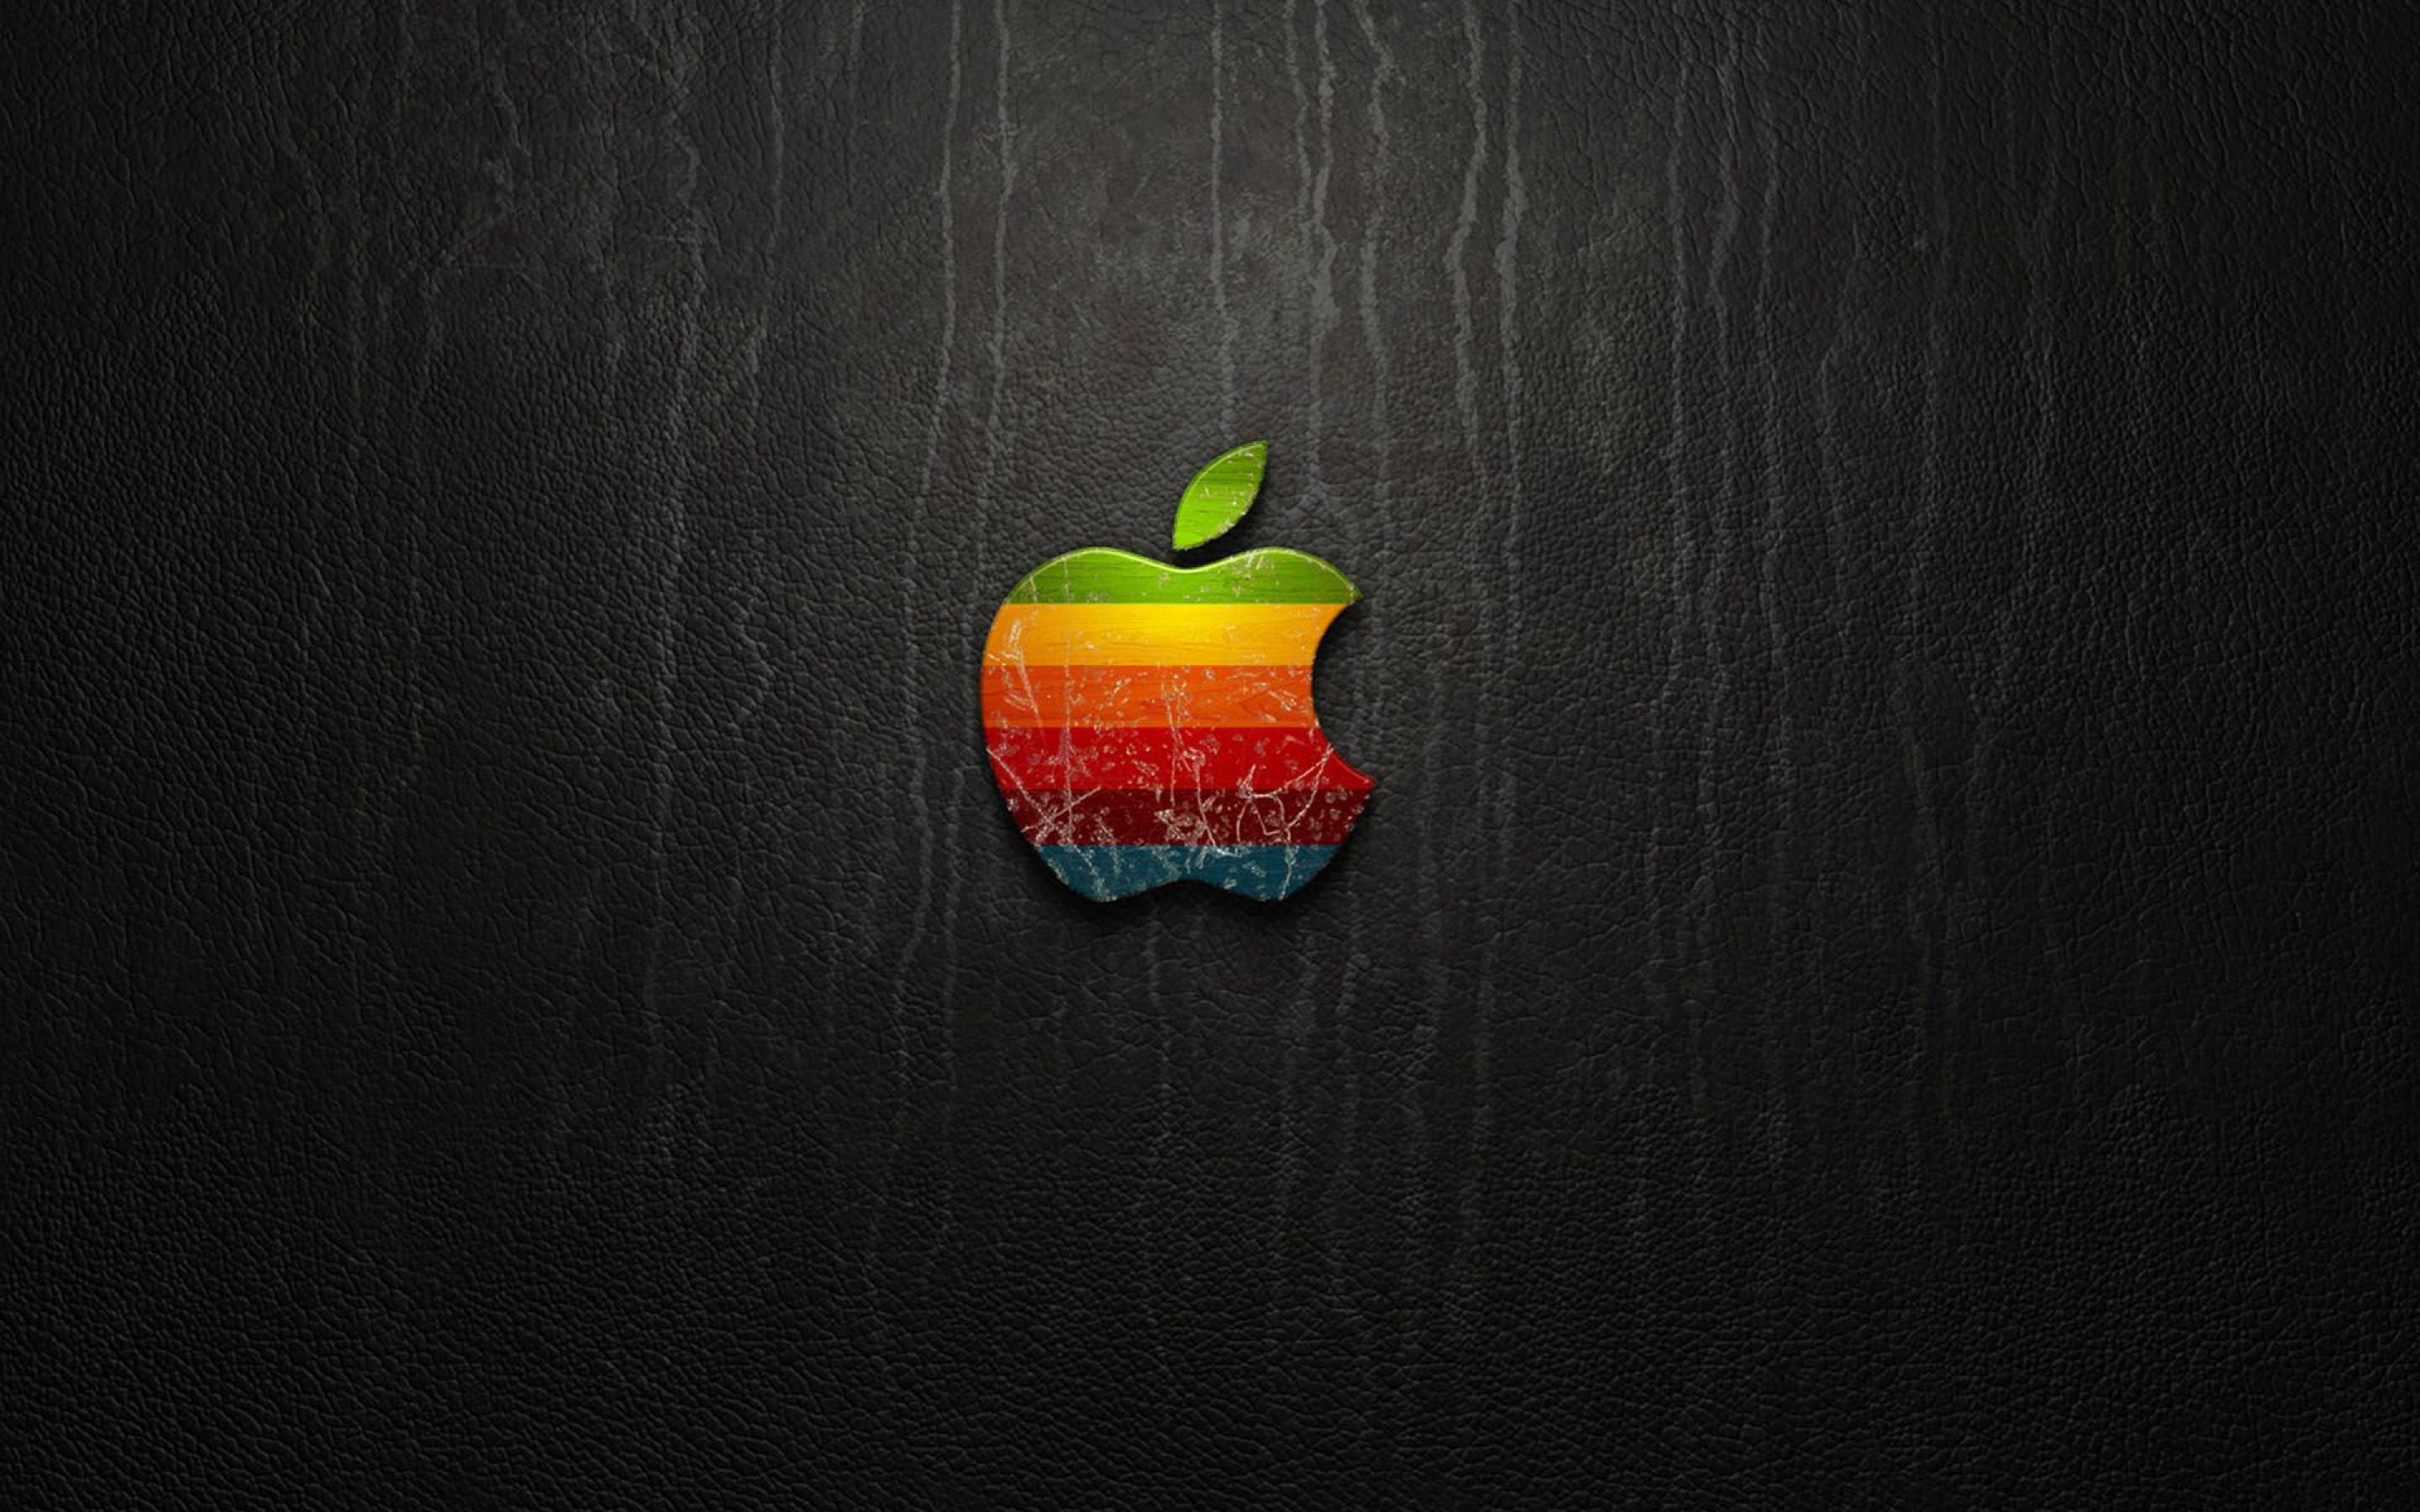 Apple Logo Hd Wallpapers For Iphone 1920 1080 Apple Logo: Apple Background Wallpapers, Pictures, Images